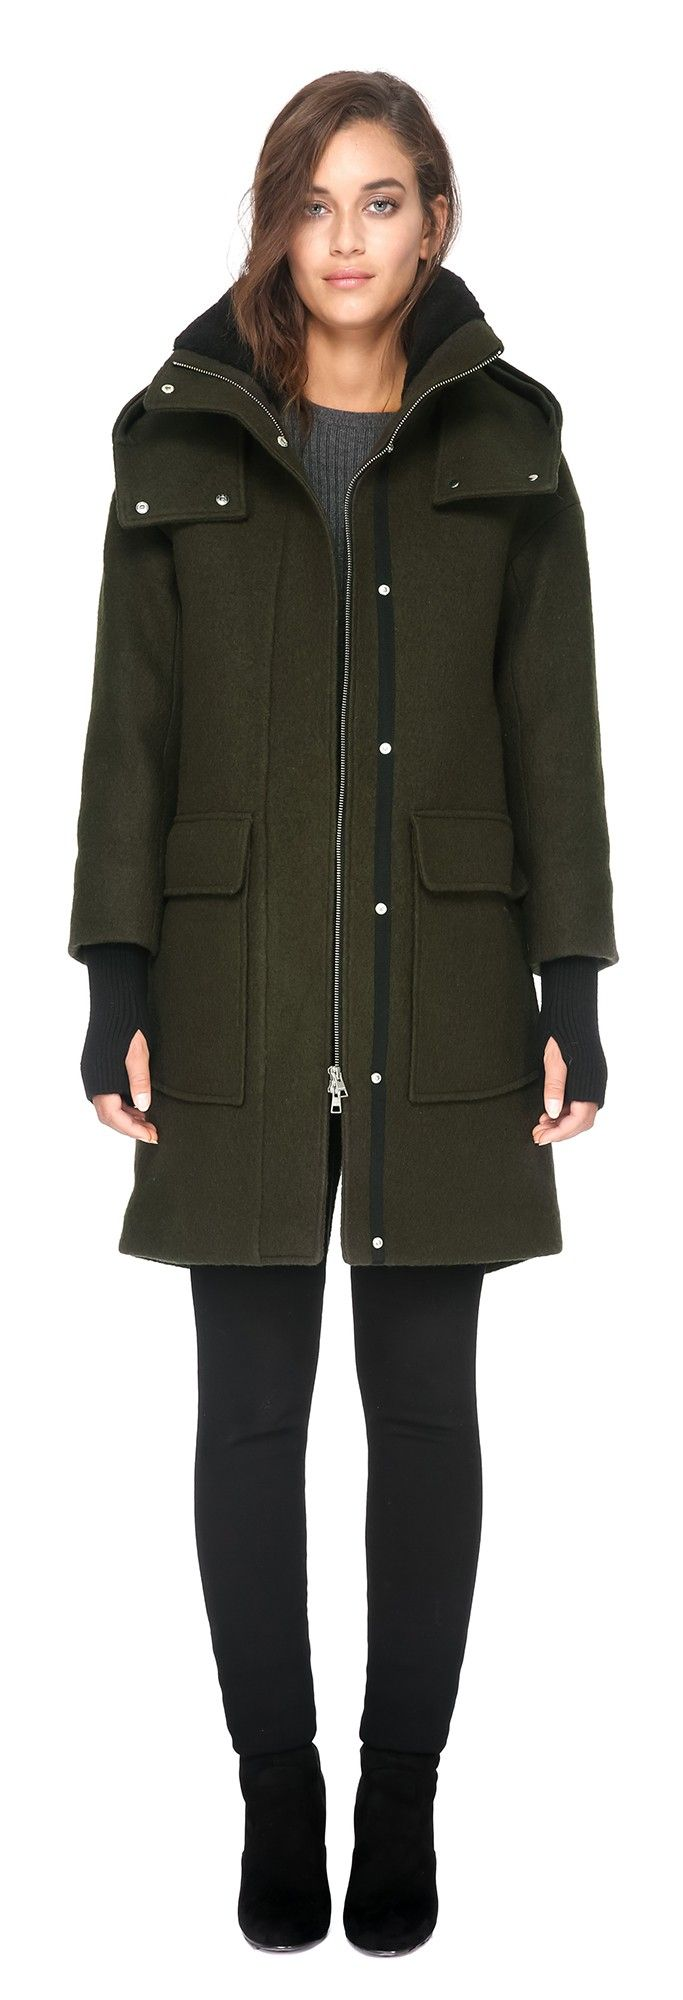 KARINE-C-ARMY | Clothes I Covet | Pinterest | Wool coats, Boiled ...